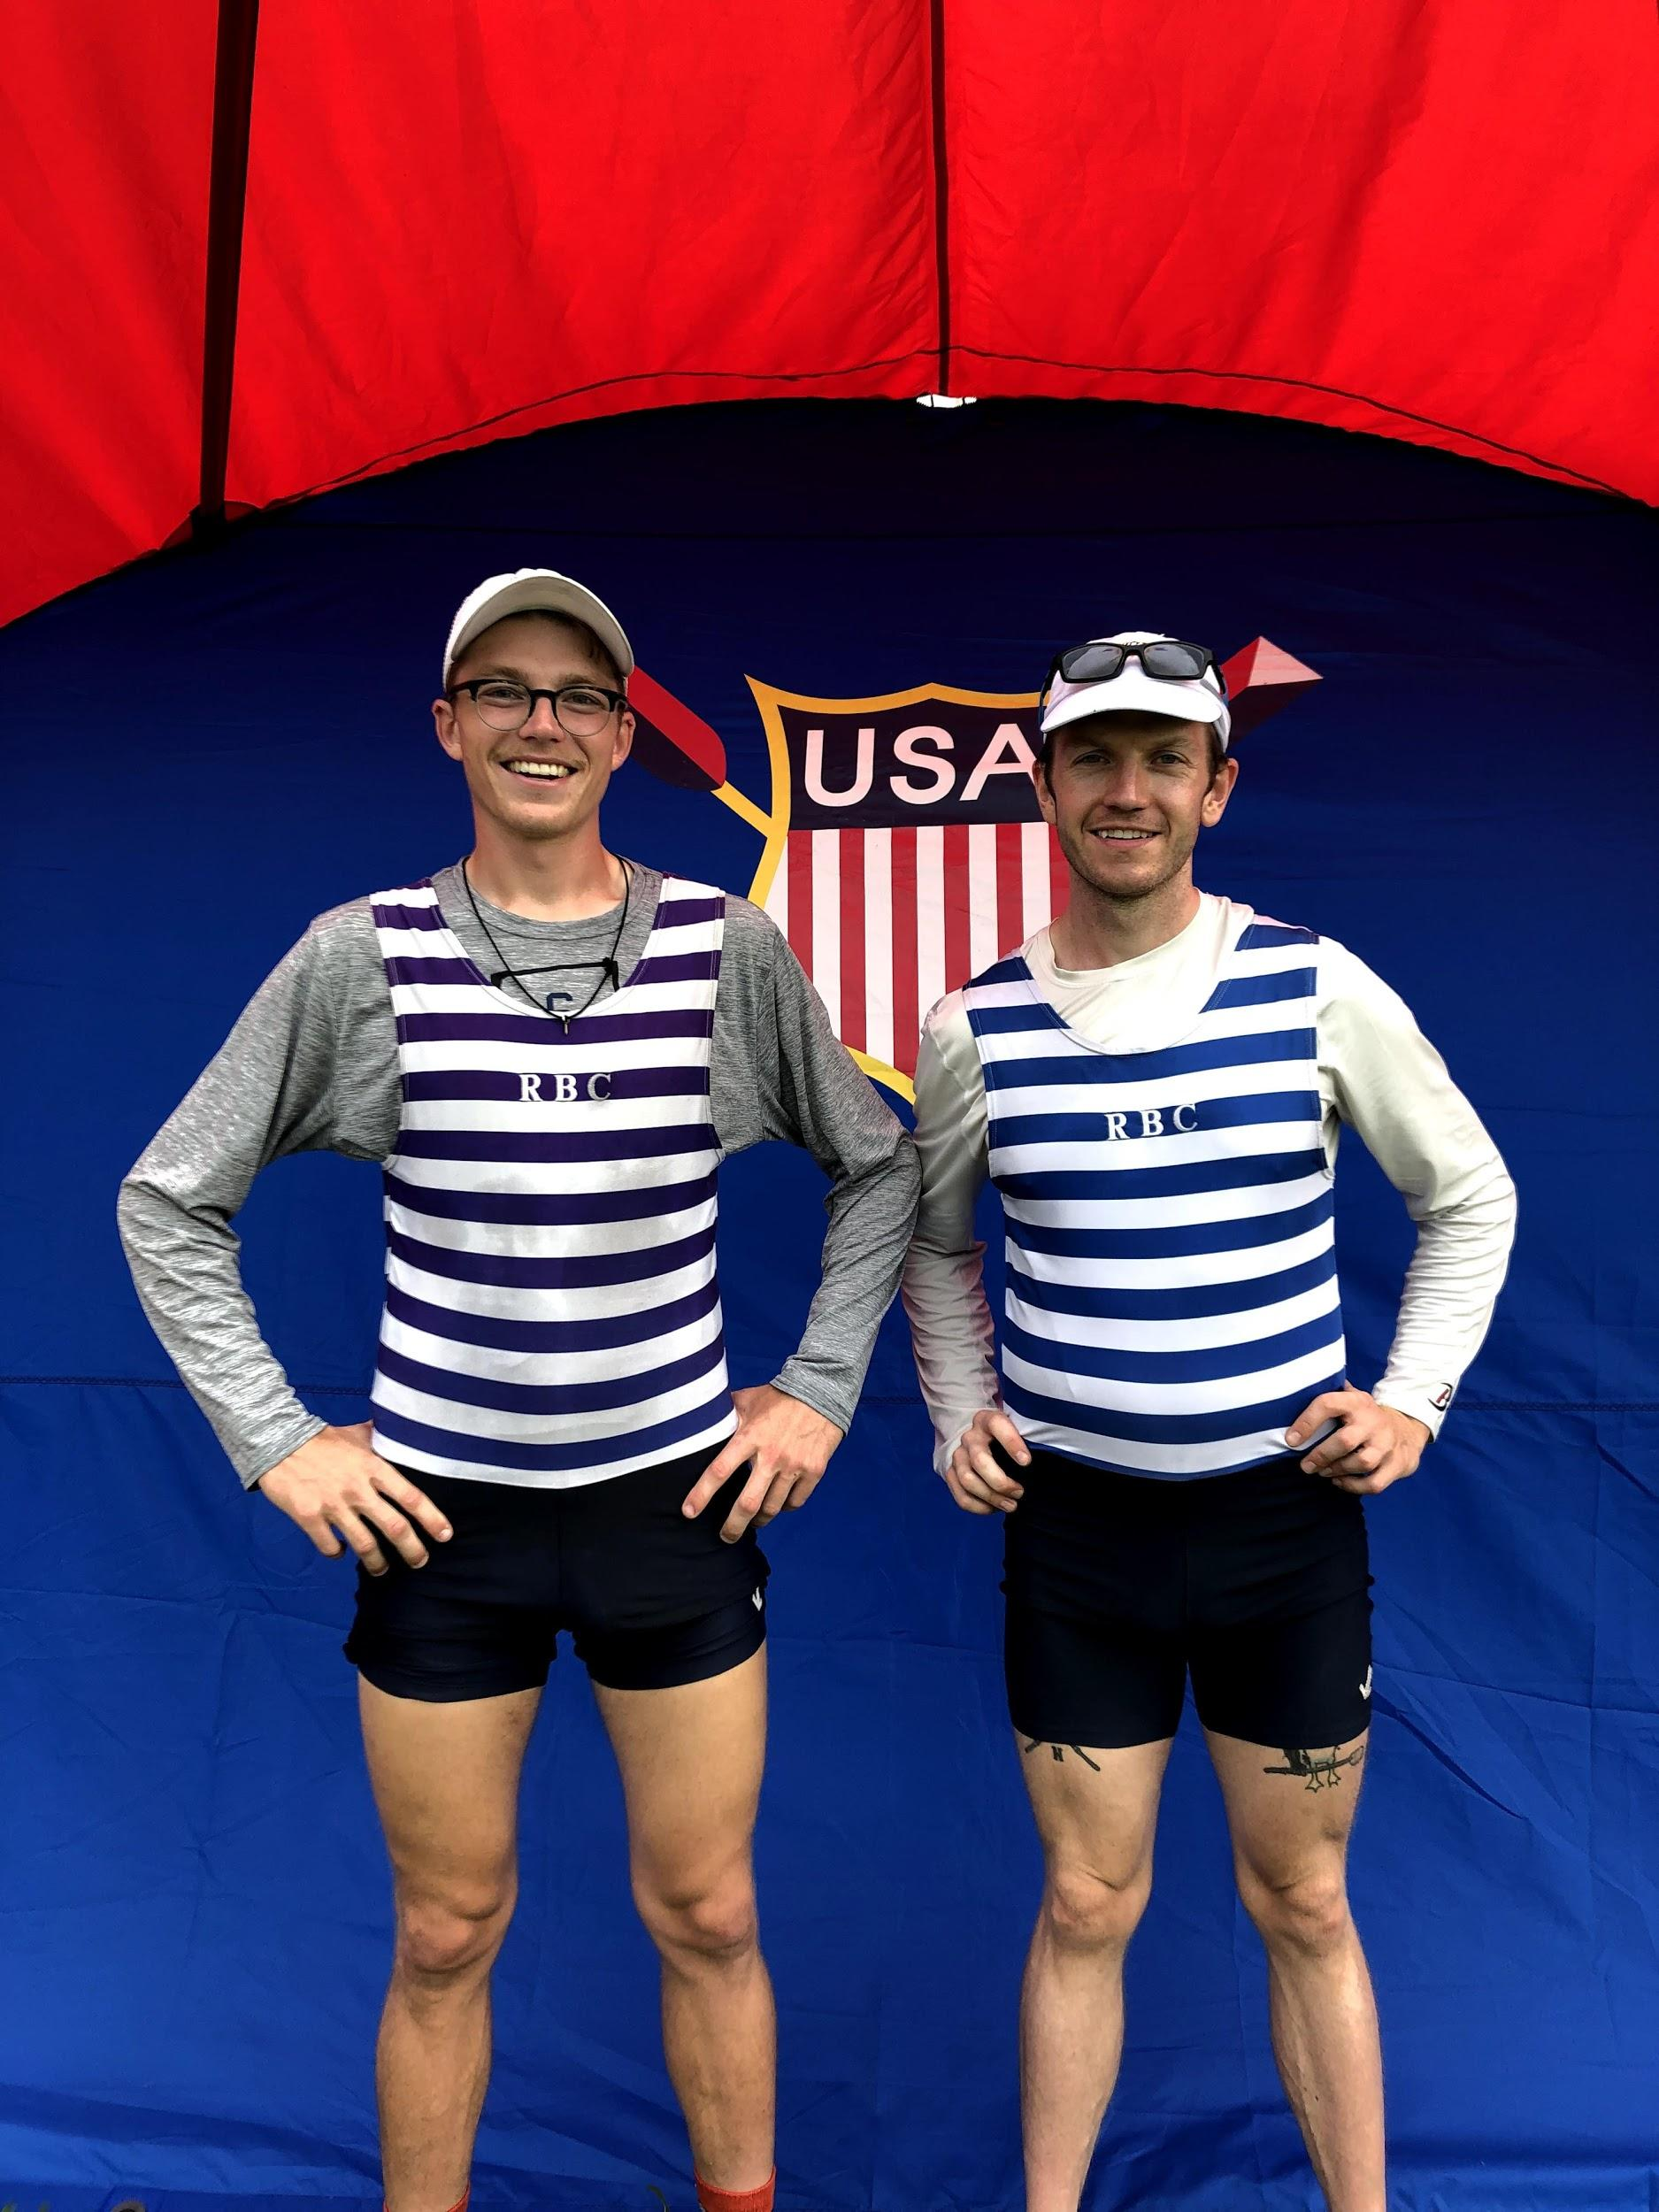 The pair representing in their RBC Stripes!